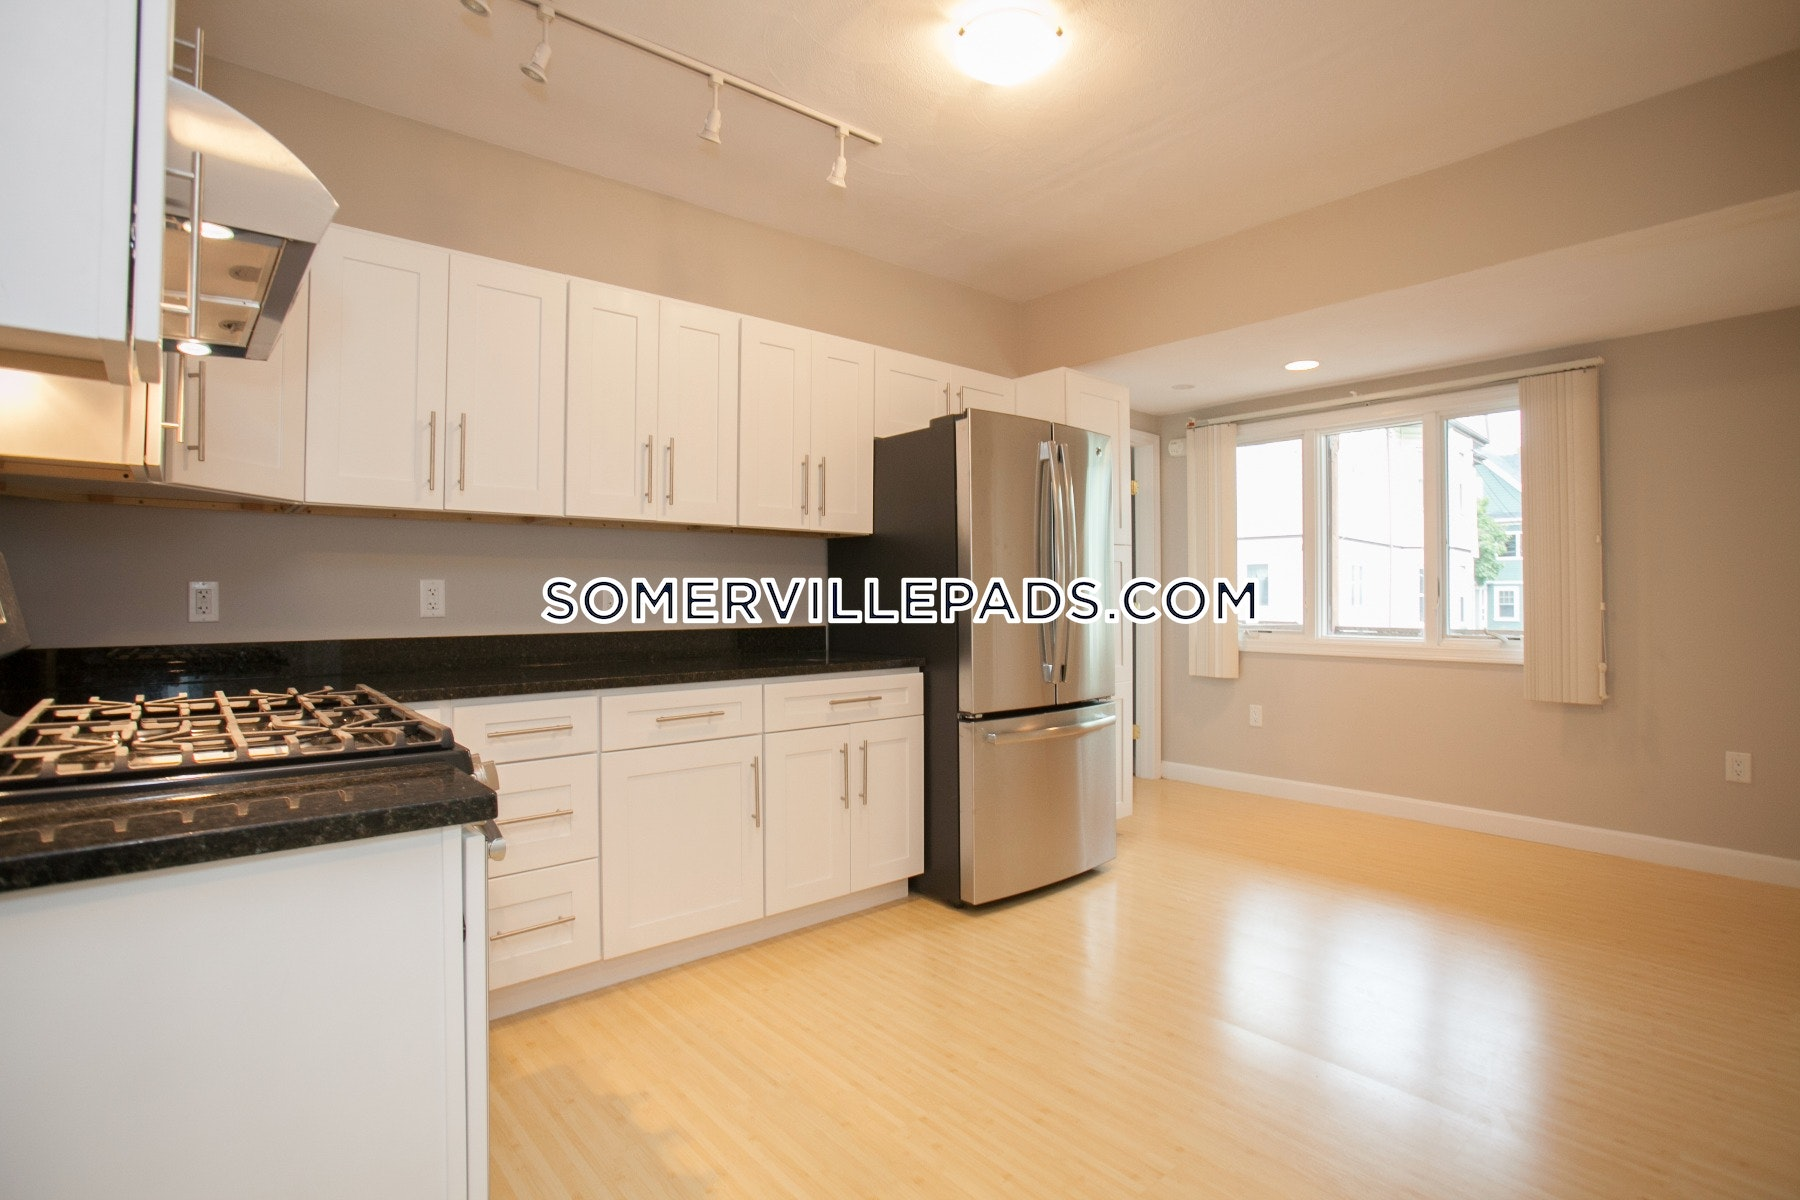 3-beds-1-bath-somerville-tufts-3500-52132